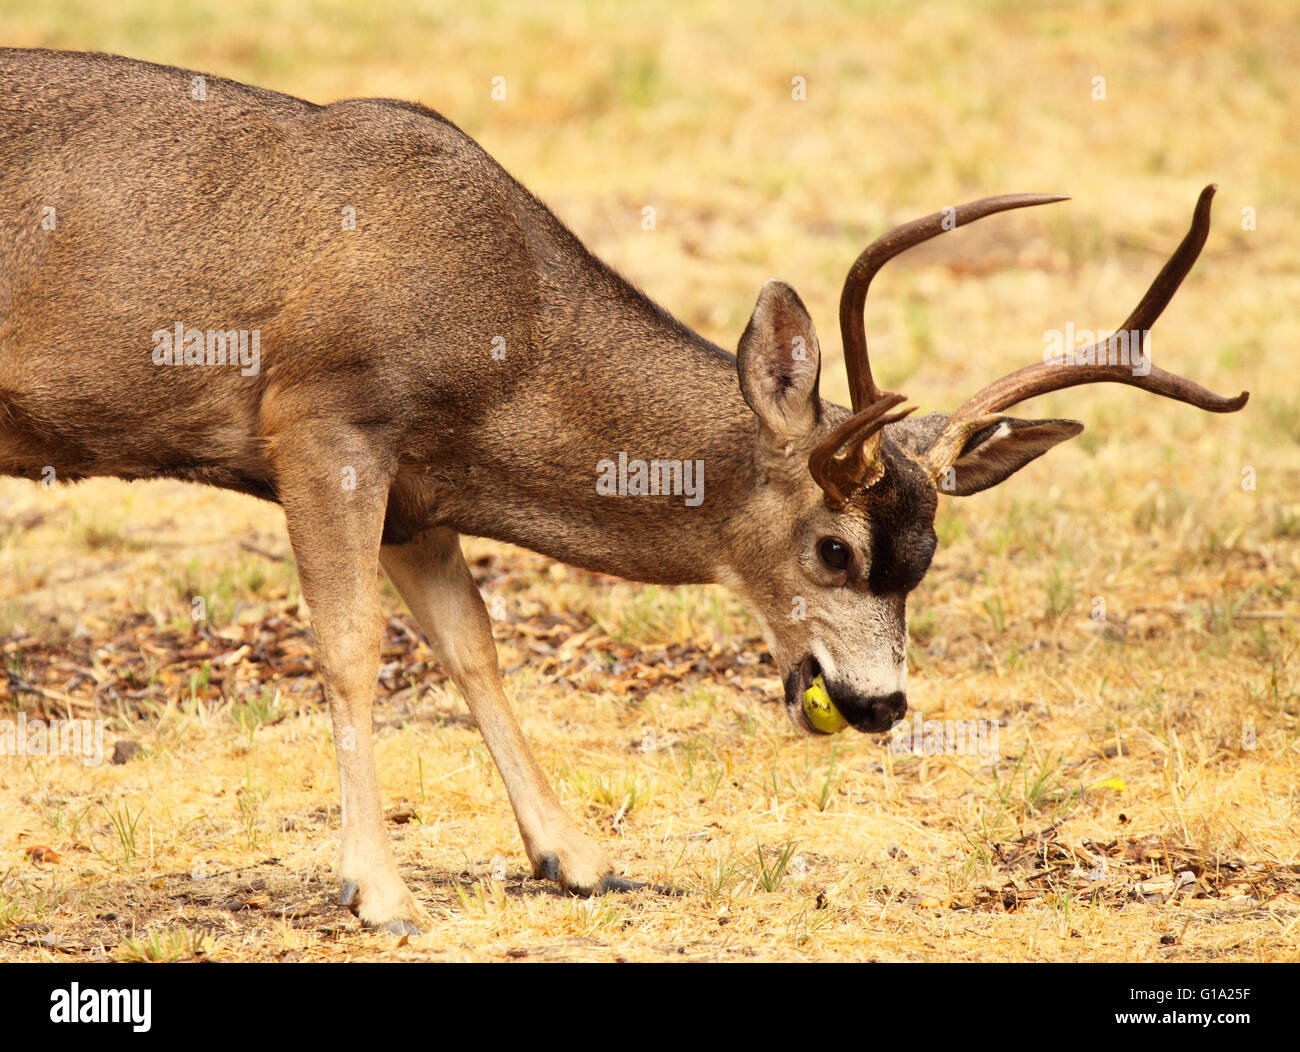 A large Black-tailed Deer buck eating an apple. - Stock Image